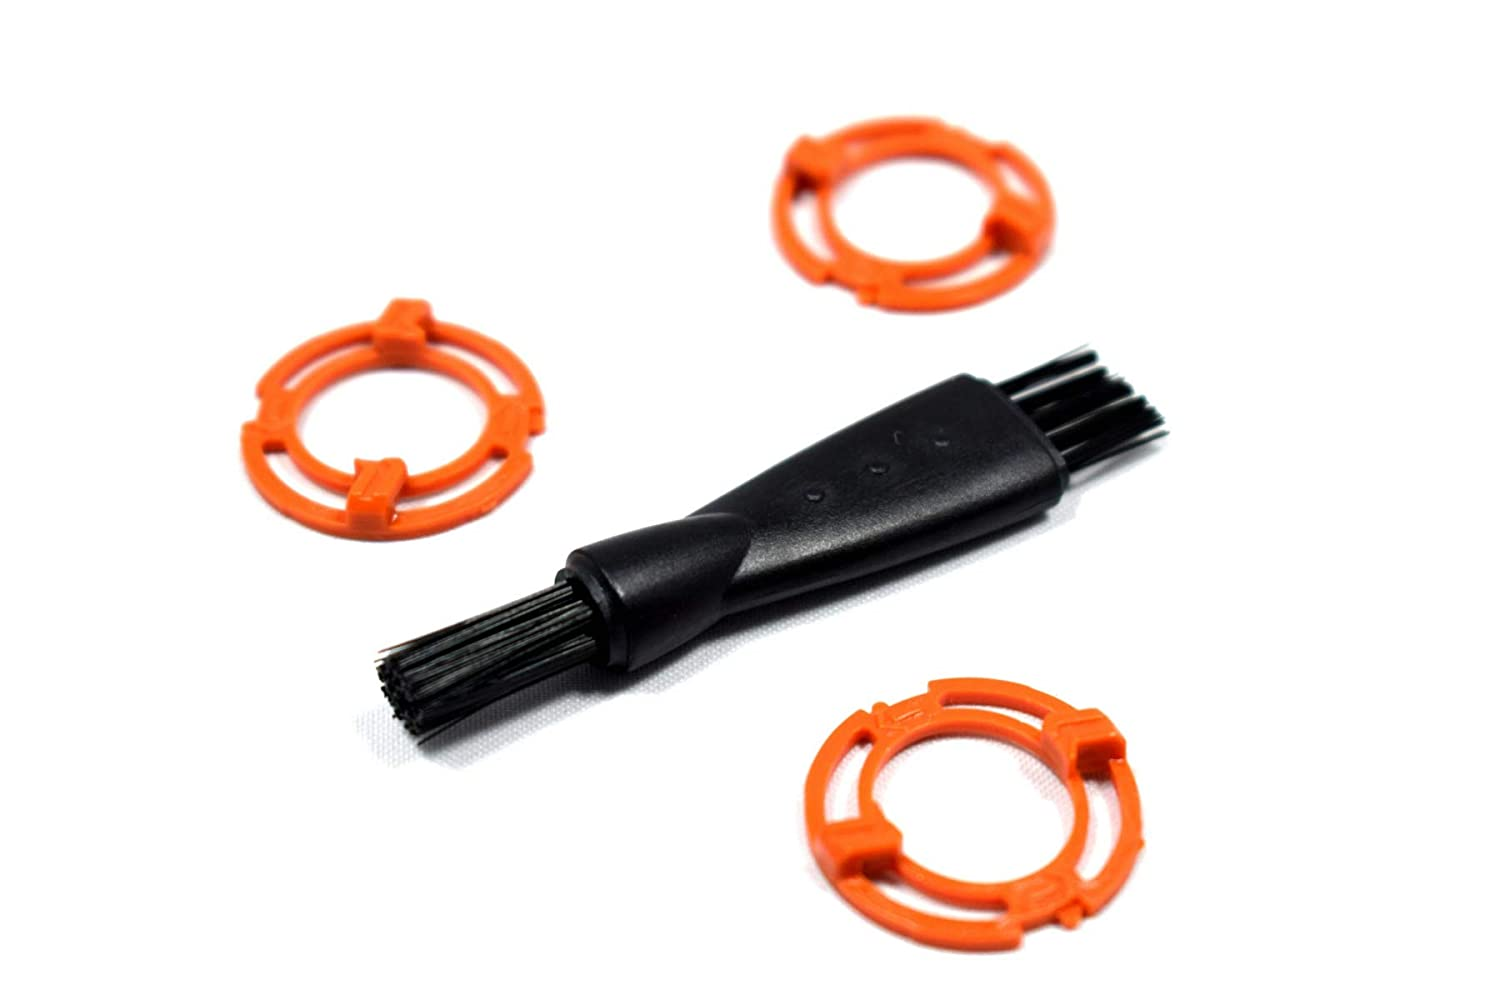 Stellate SH90 Philips Norelco Replacement Rings Blade Holder – Orange Rings Compatible With Norelco 9000 Norelco Series 8000 Philips Norelco Aquatec Replacement Rings RQ12